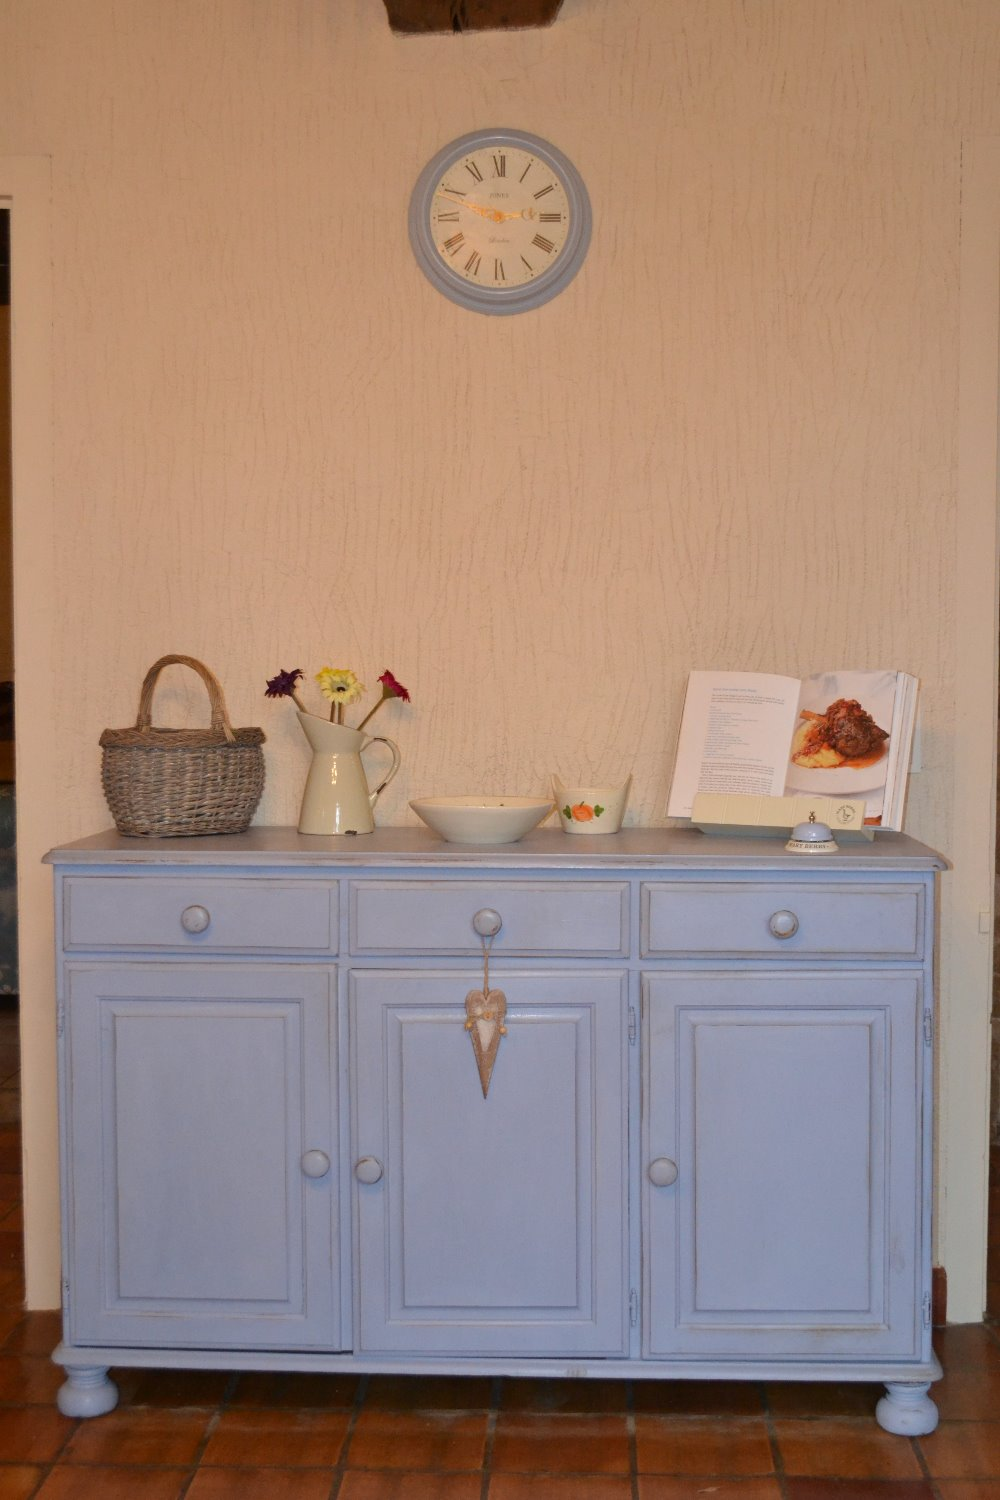 Lovely chalk-painted French dresser